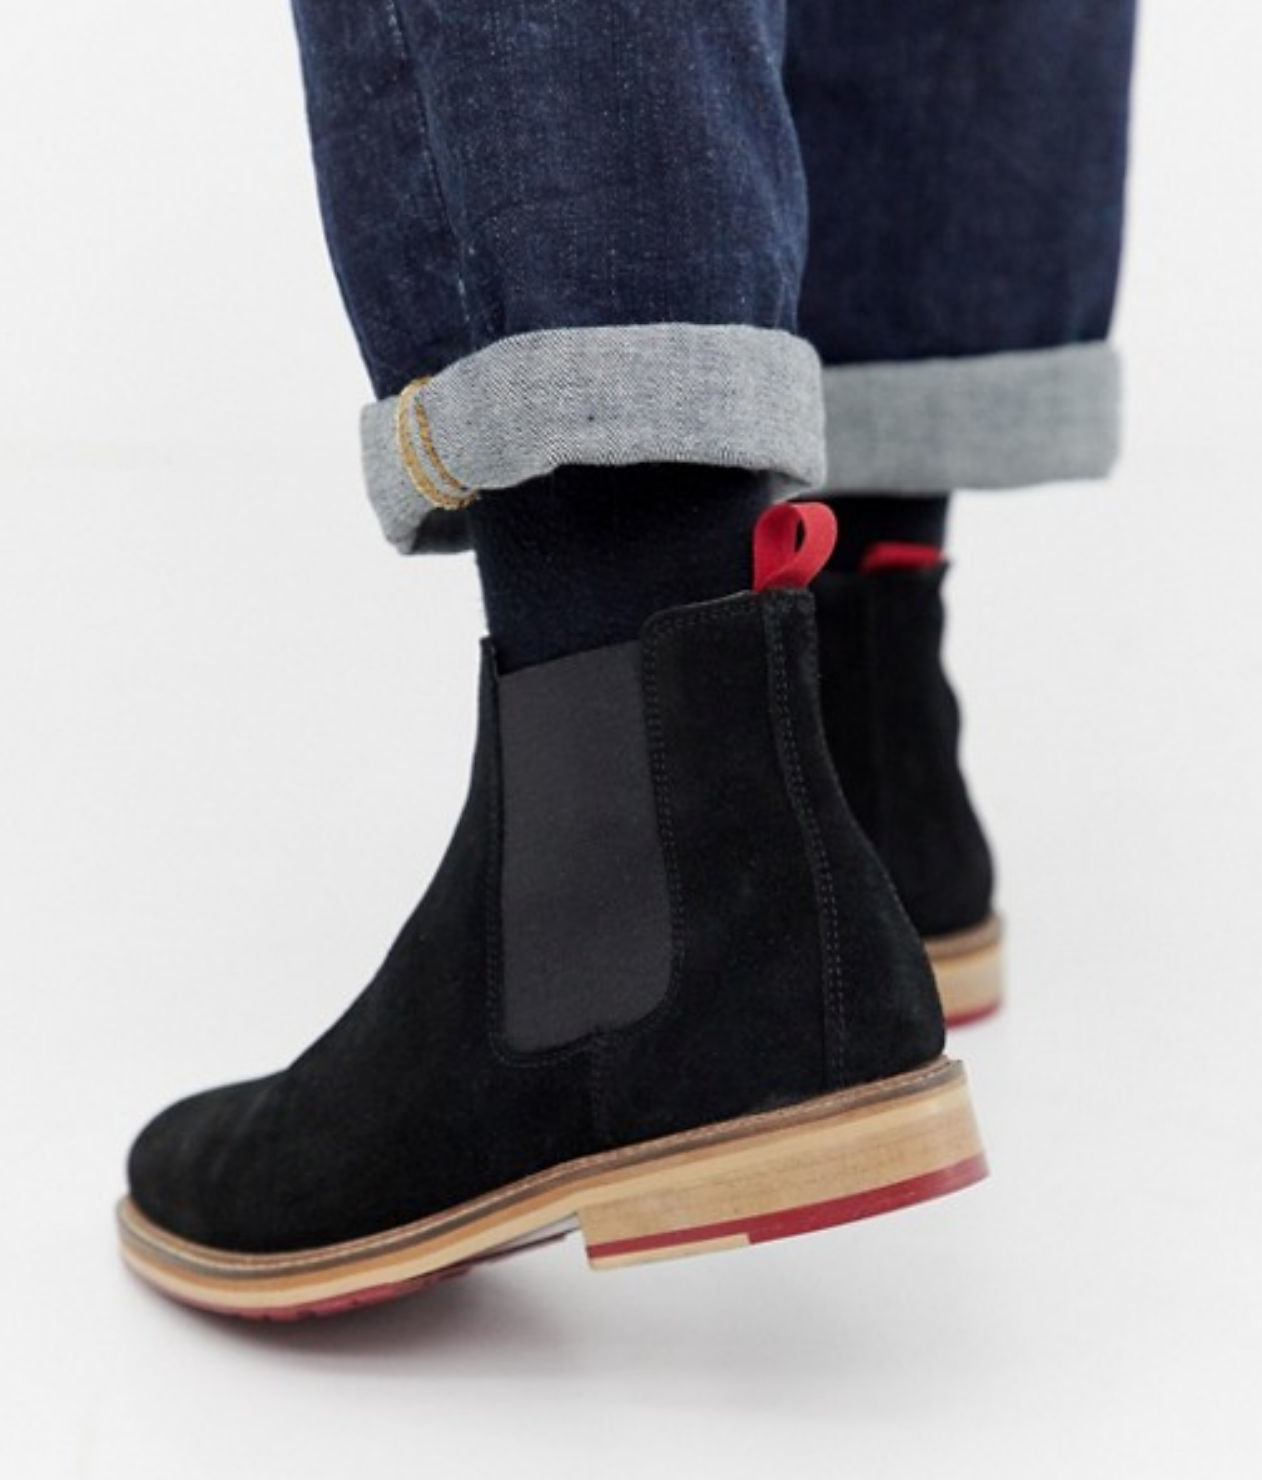 Mens Black Genuine Suede Leather Dress Chelsea Boots w  Red Cleated Sole